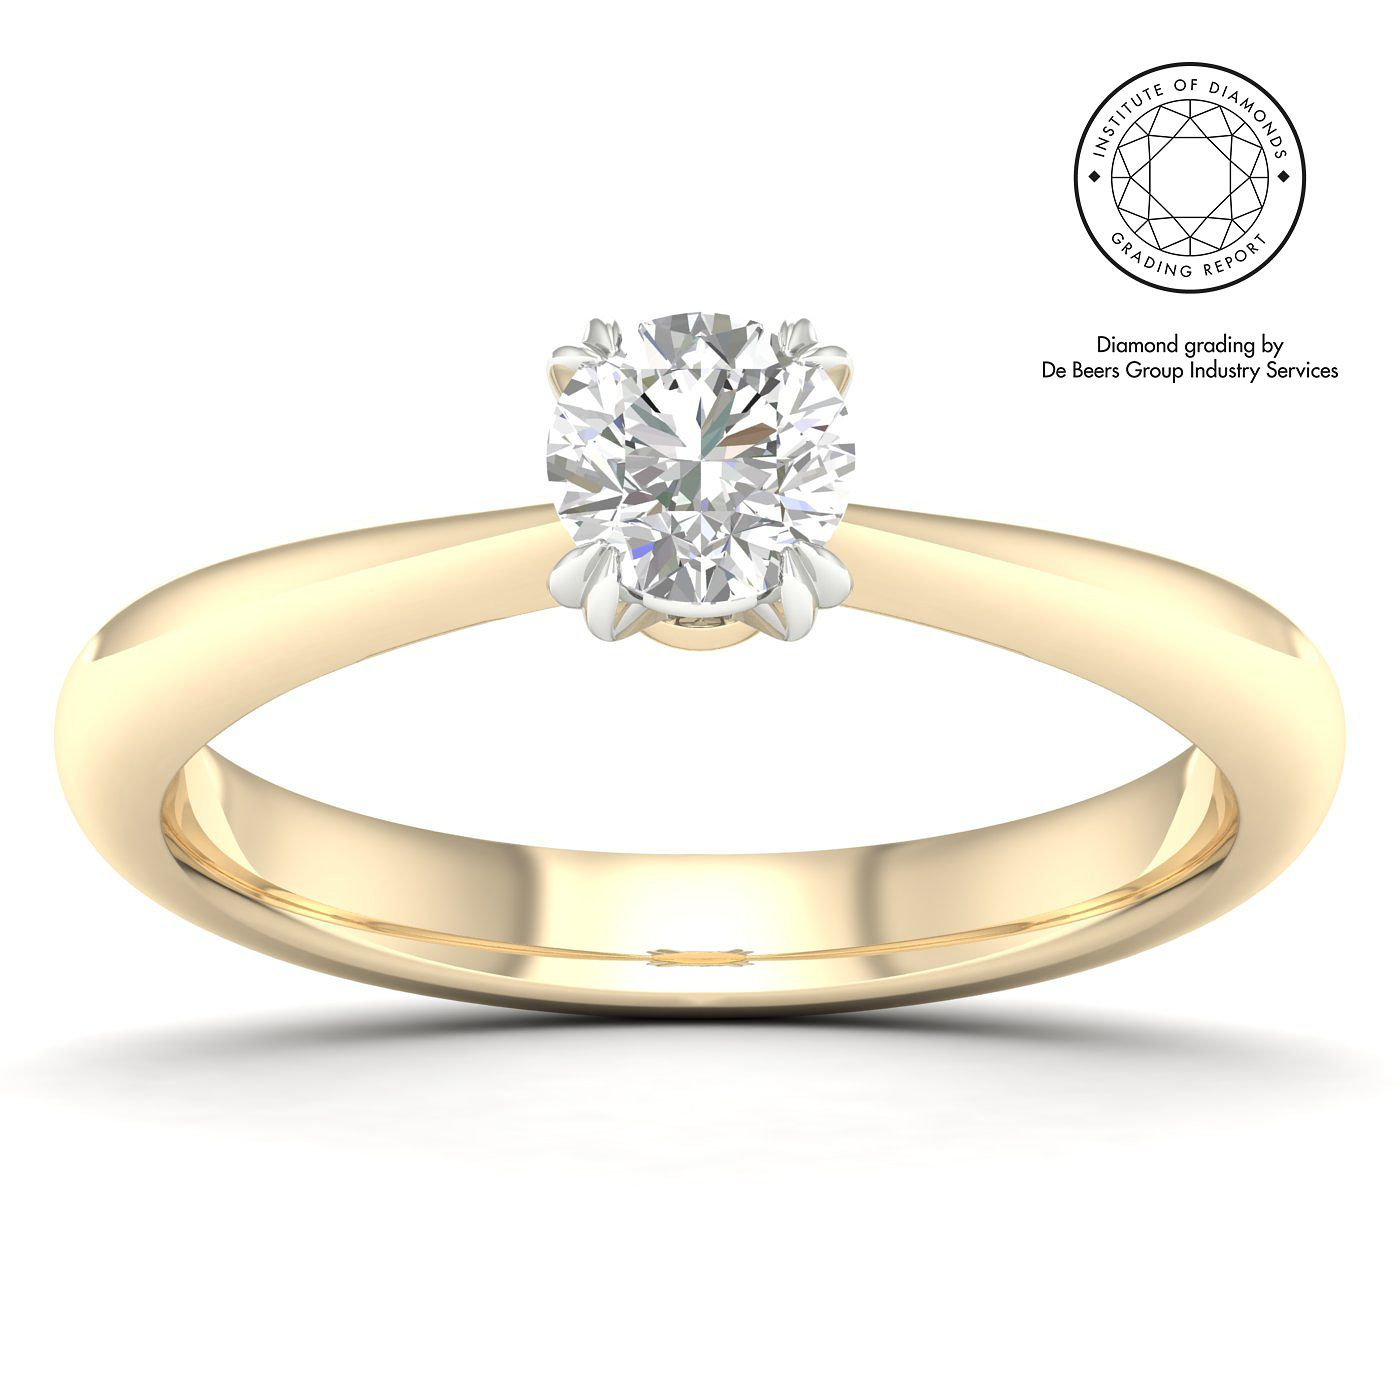 18ct Yellow Gold & Platinum 0.40ct Diamond Solitaire Ring - Product number 2547066